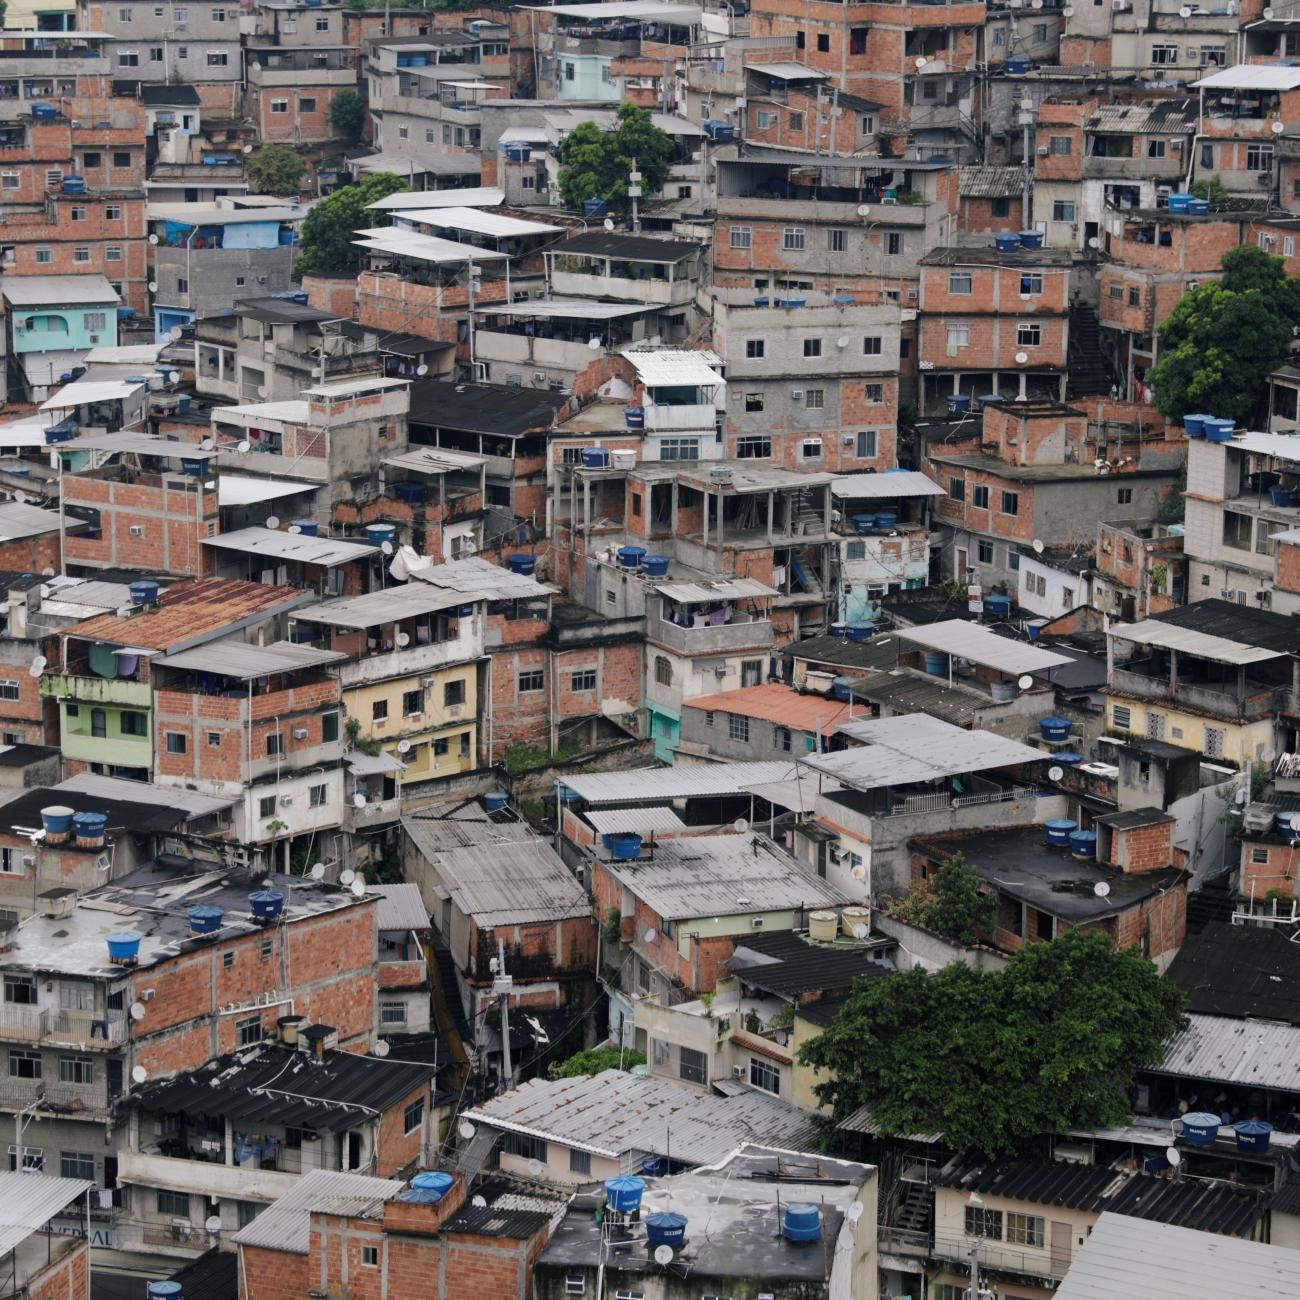 A general view of Alemao slums complex during the coronavirus disease outbreak in Rio de Janeiro, Brazil on March 22, 2020.